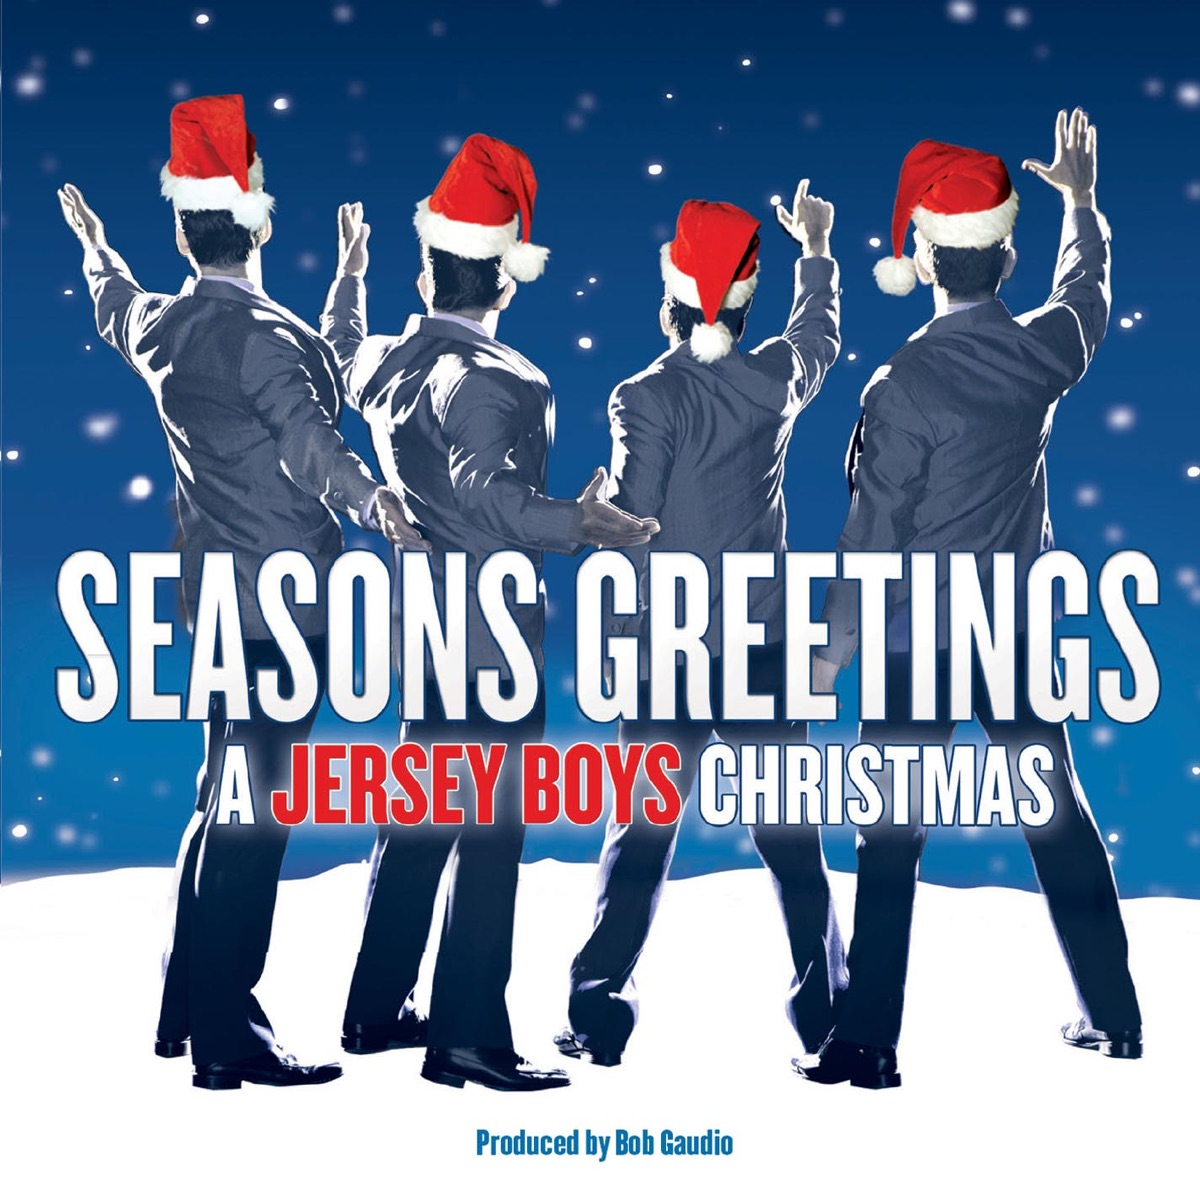 Seasons Greetings - A Jersey Boys Christmas Album Cover by Jersey Boys